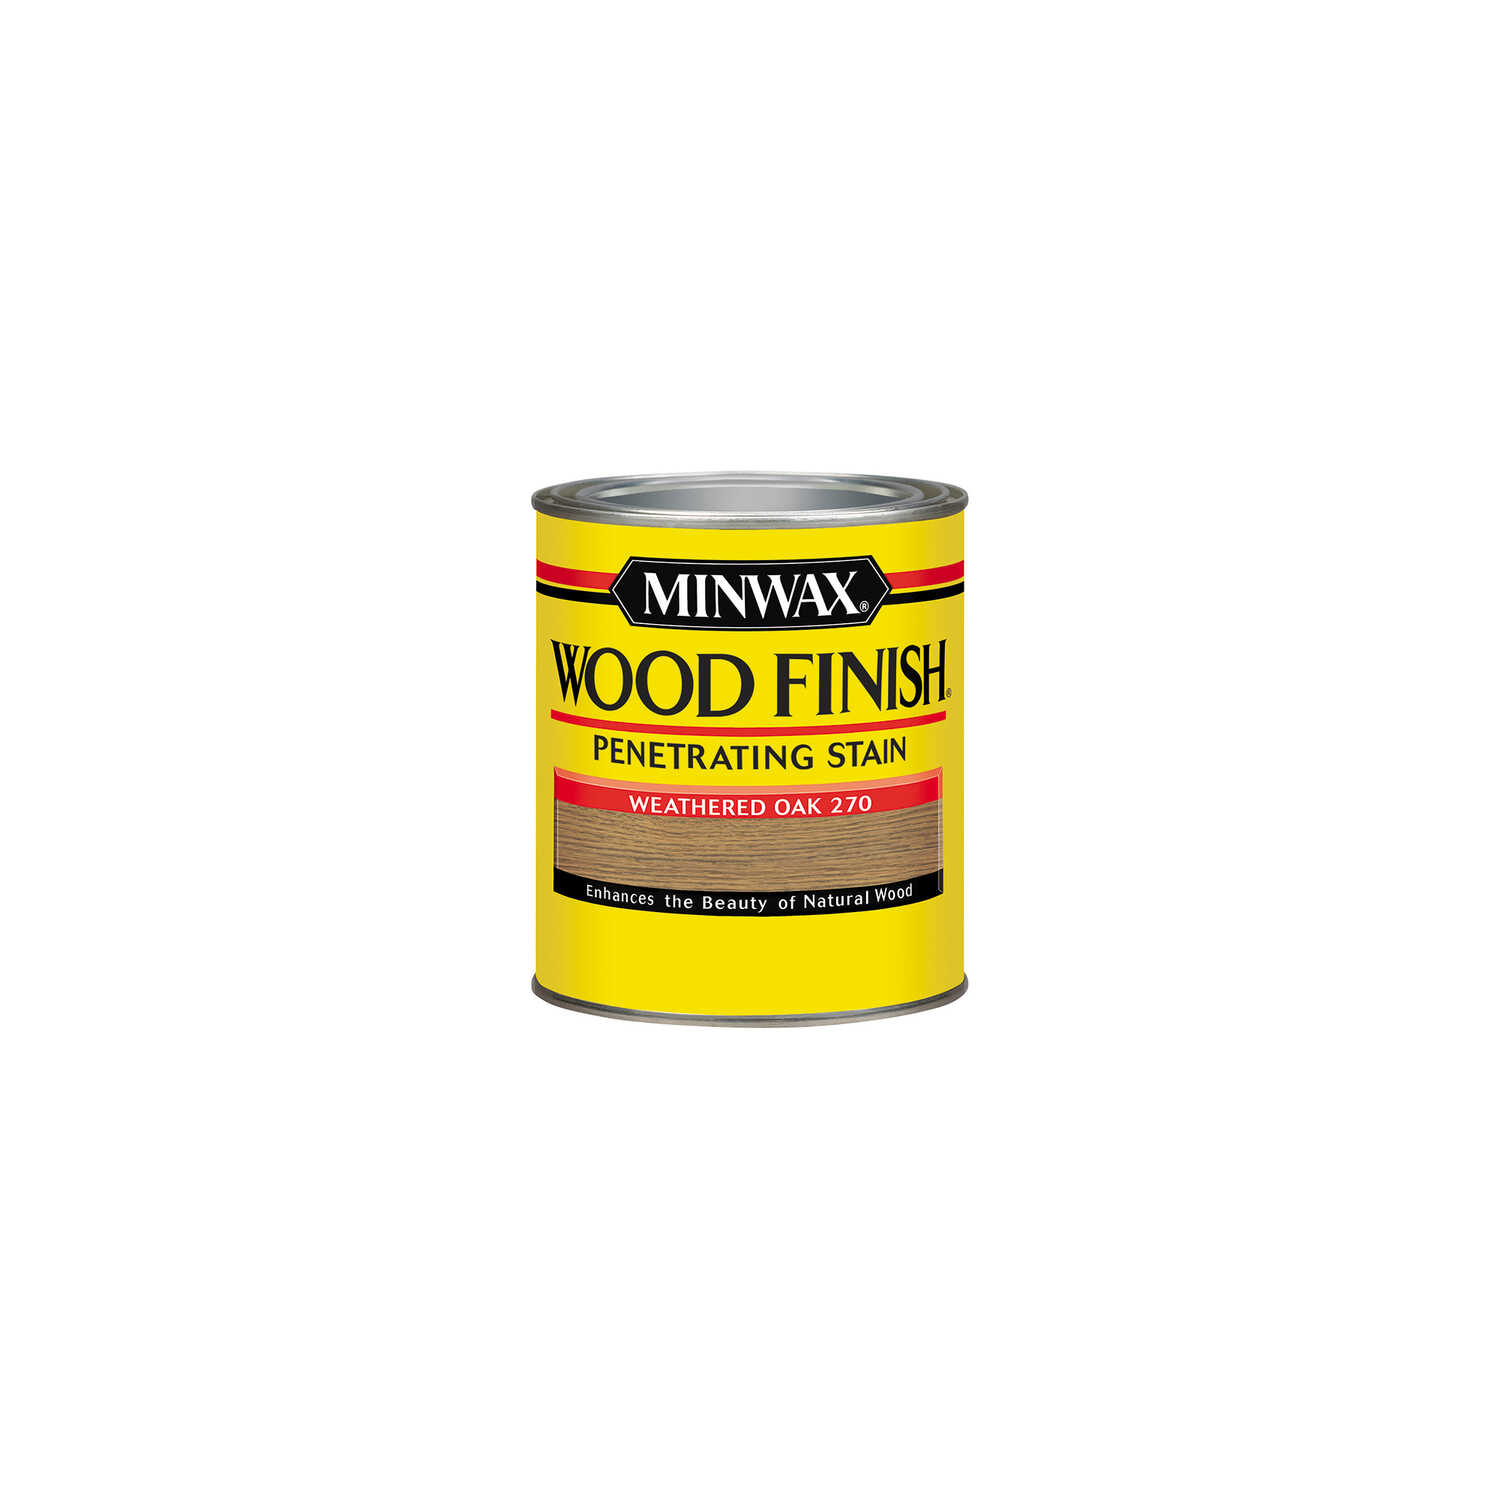 Minwax  Wood Finish  Semi-Transparent  Weathered Oak  Oil-Based  Oil  Wood Stain  0.5 pt.